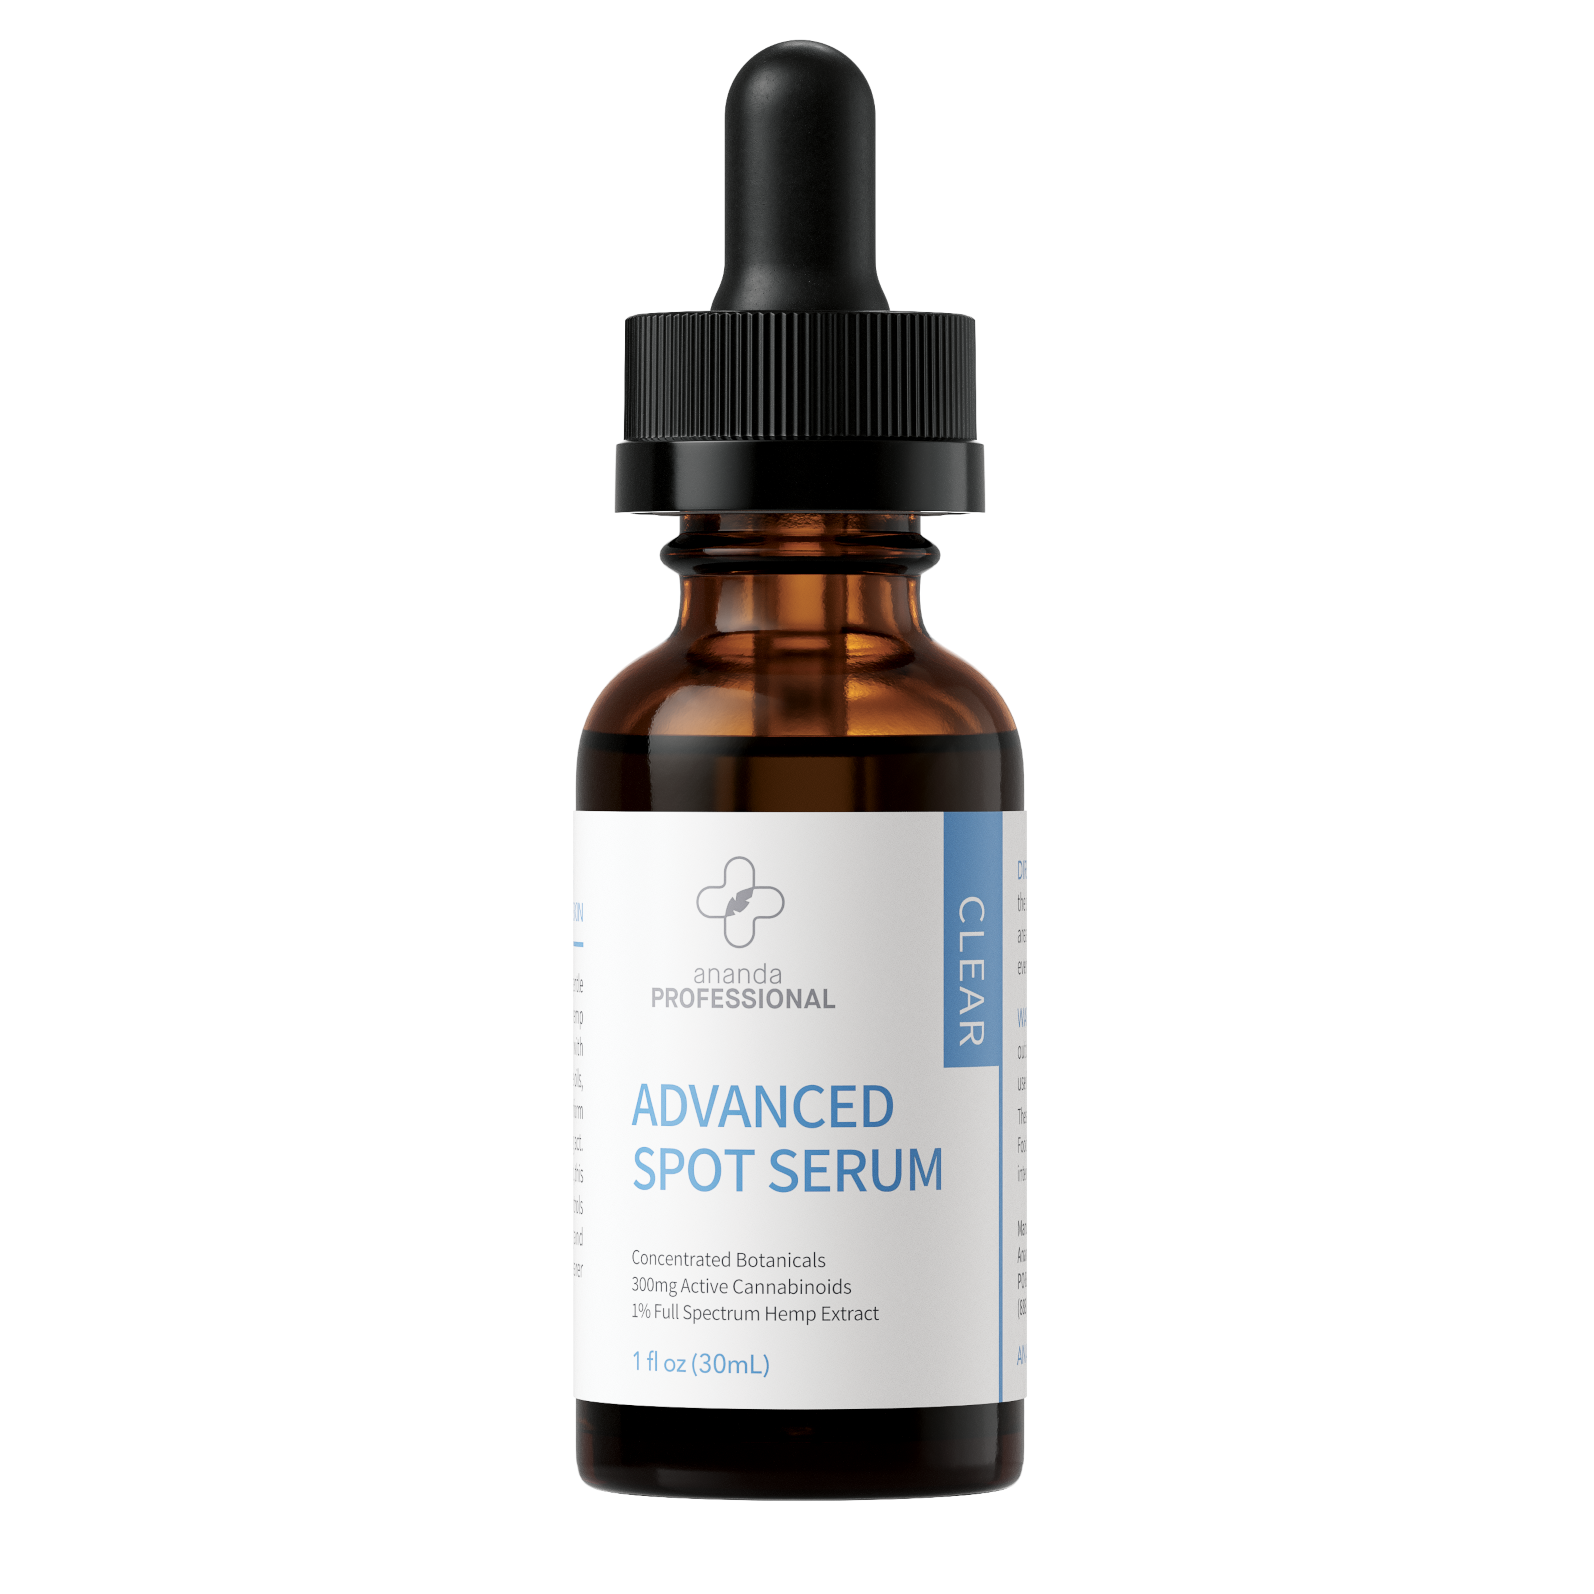 Ananda Advanced Spot Serum